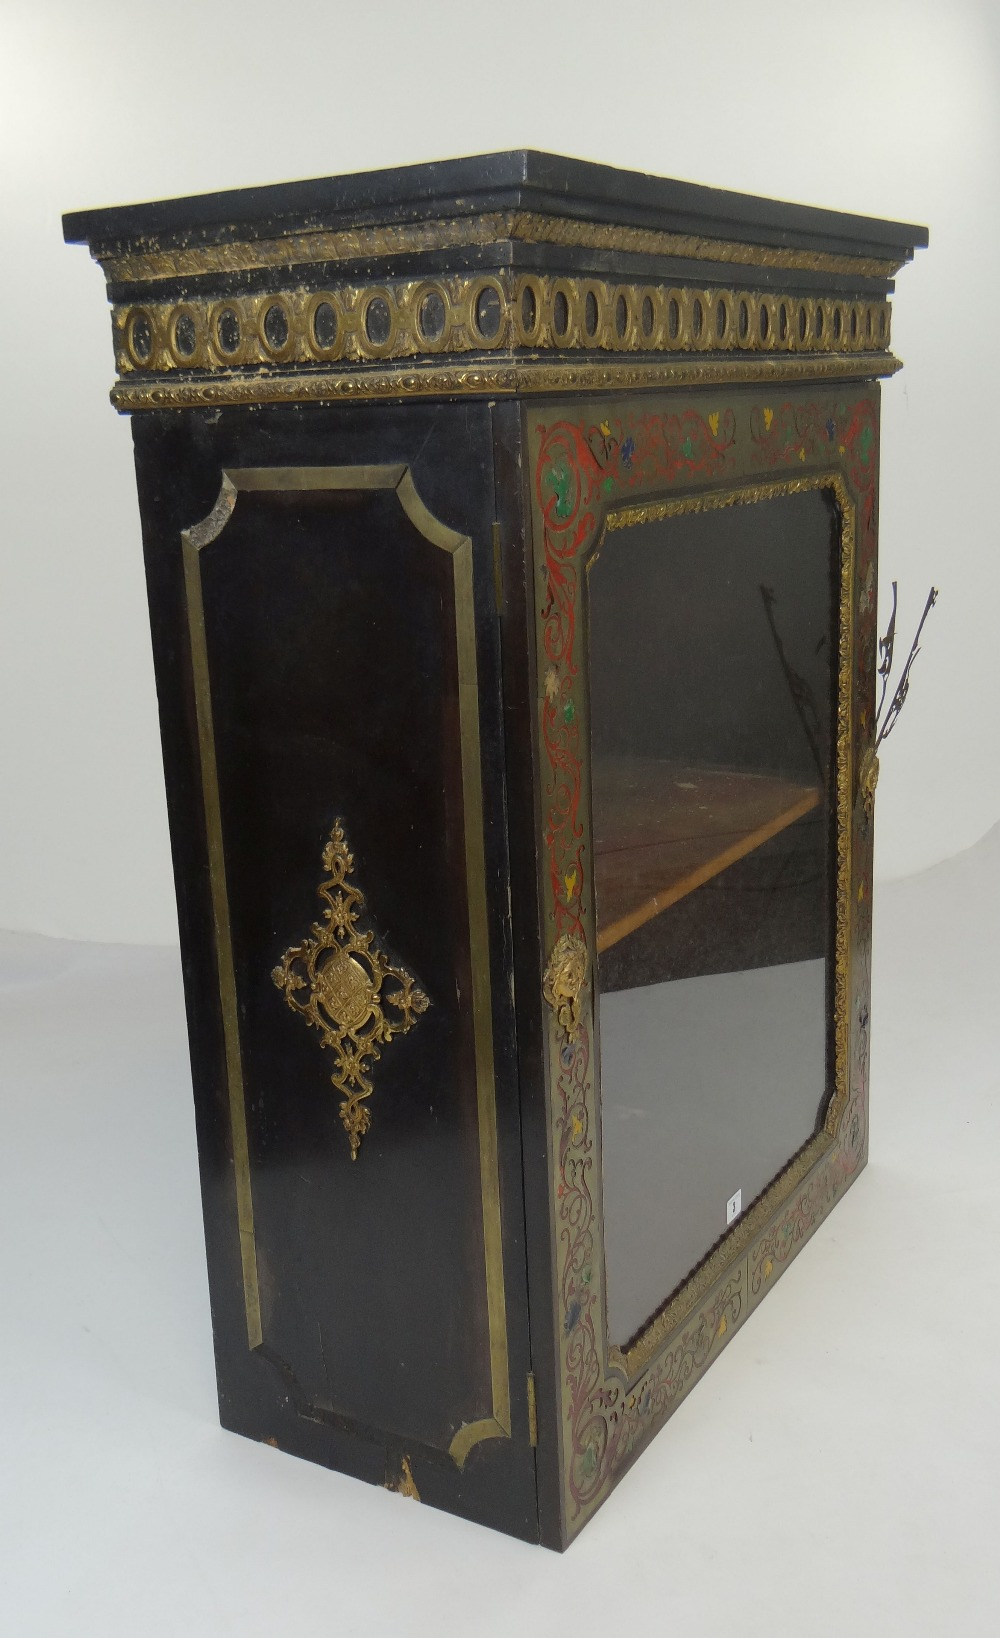 Lot 3 - 19TH CENTURY PIER CABINET, gilt metal and coloured enamel mounting, single glazed door, 75cms wide